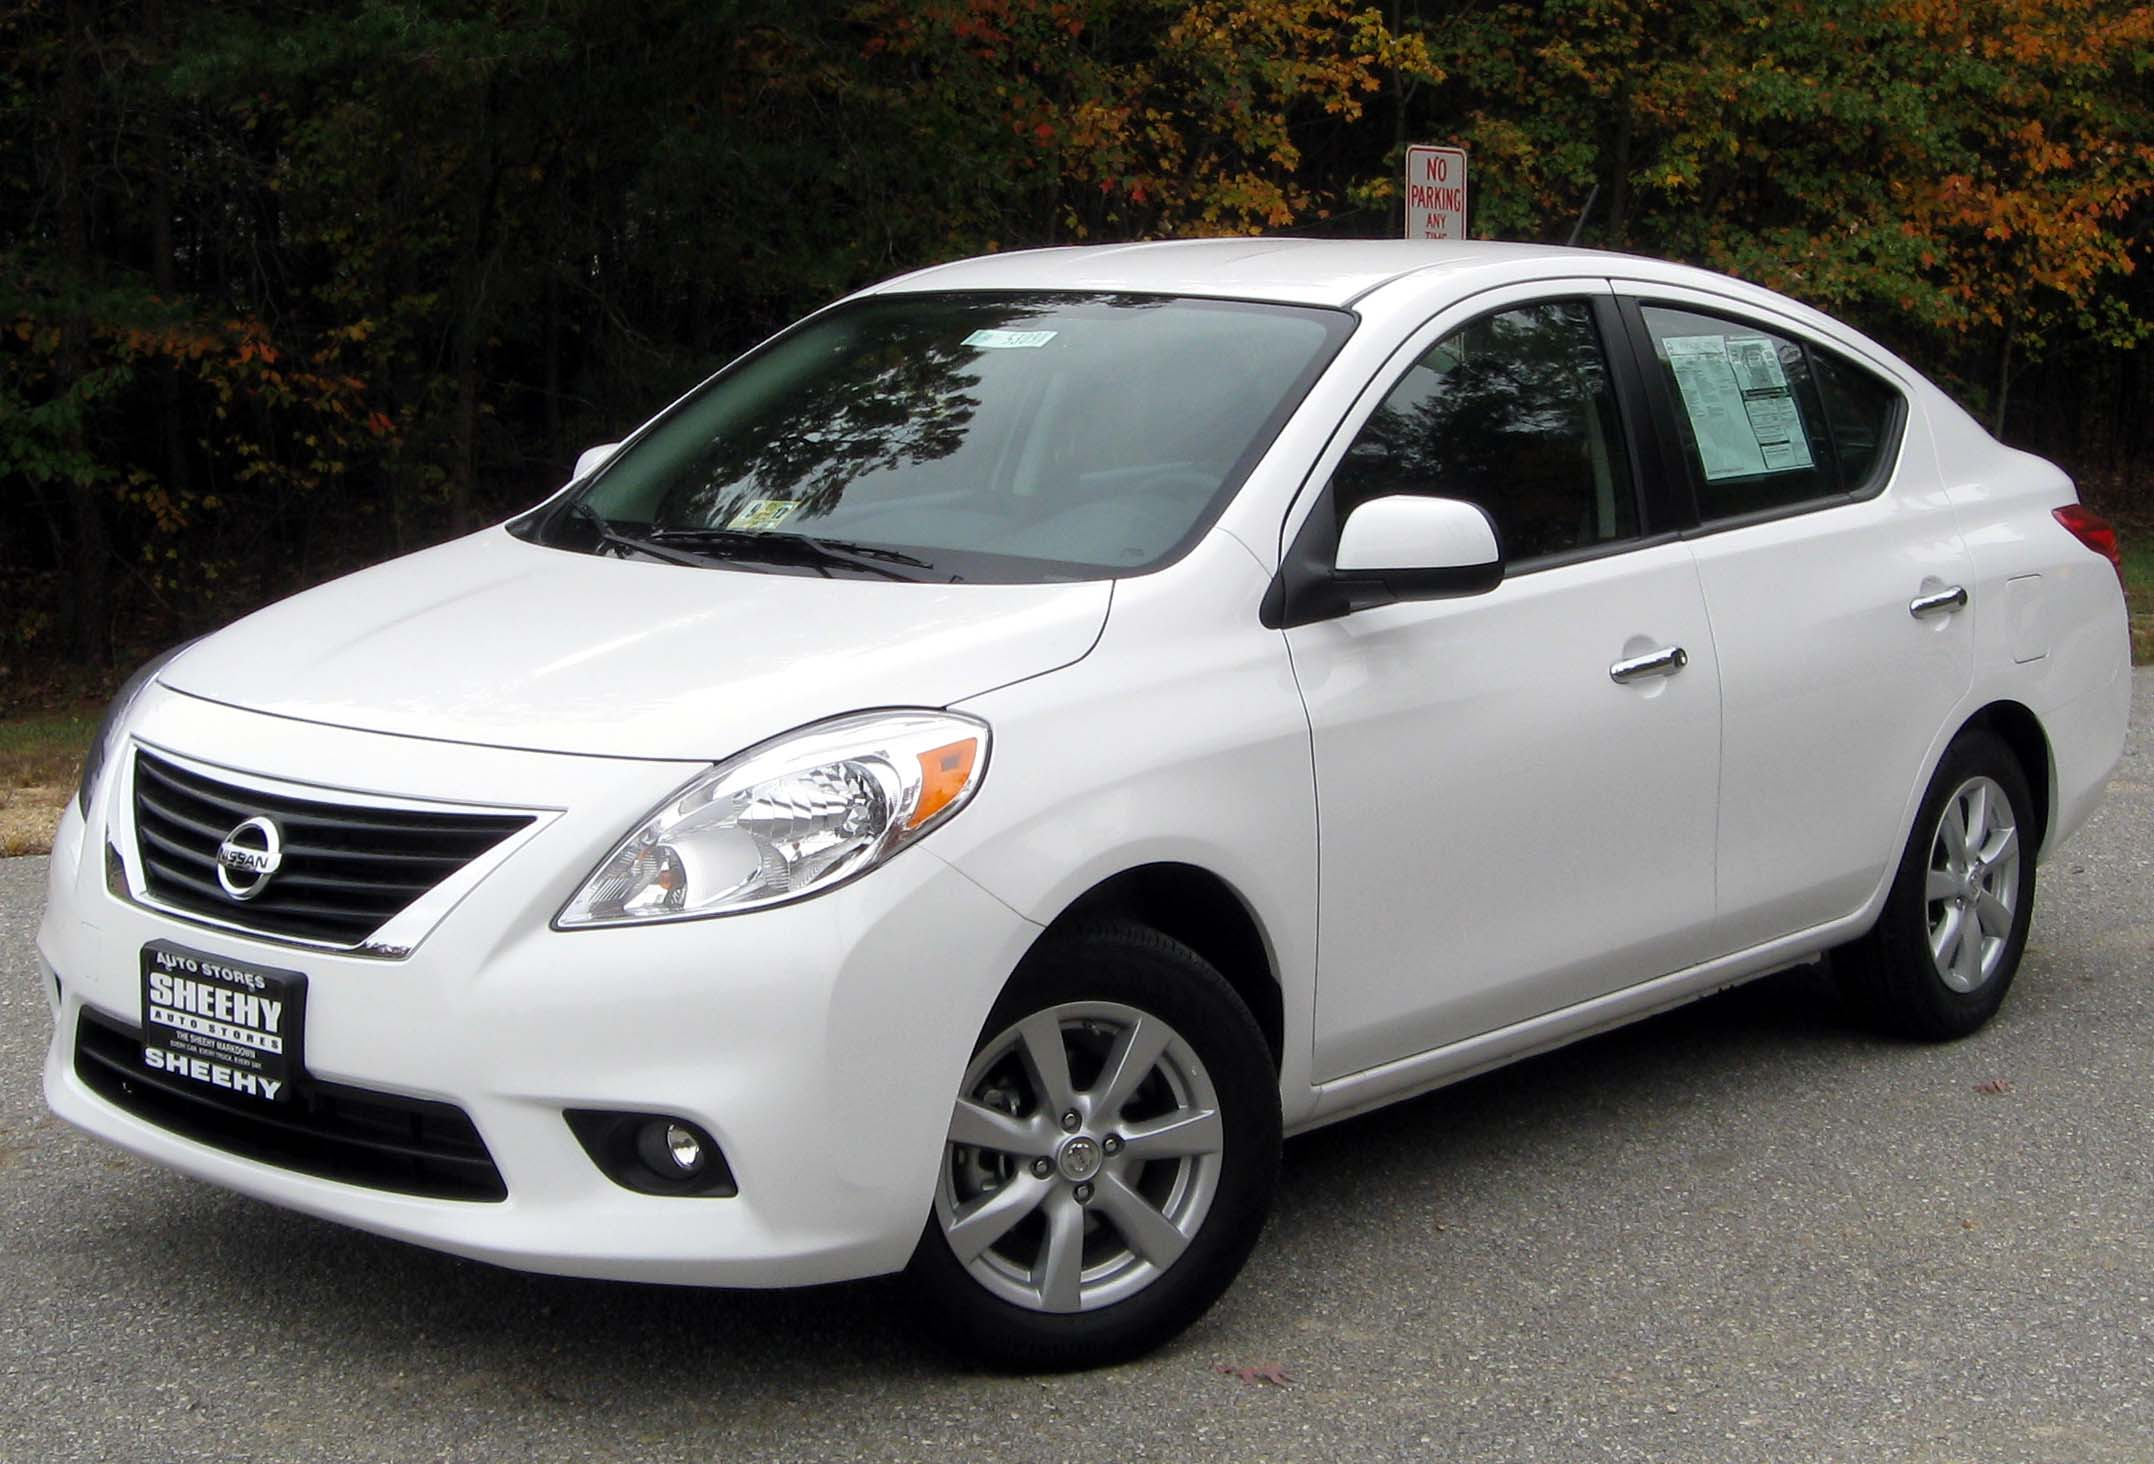 Nissan Versa Cars Recalled for Air Bag Malfunction